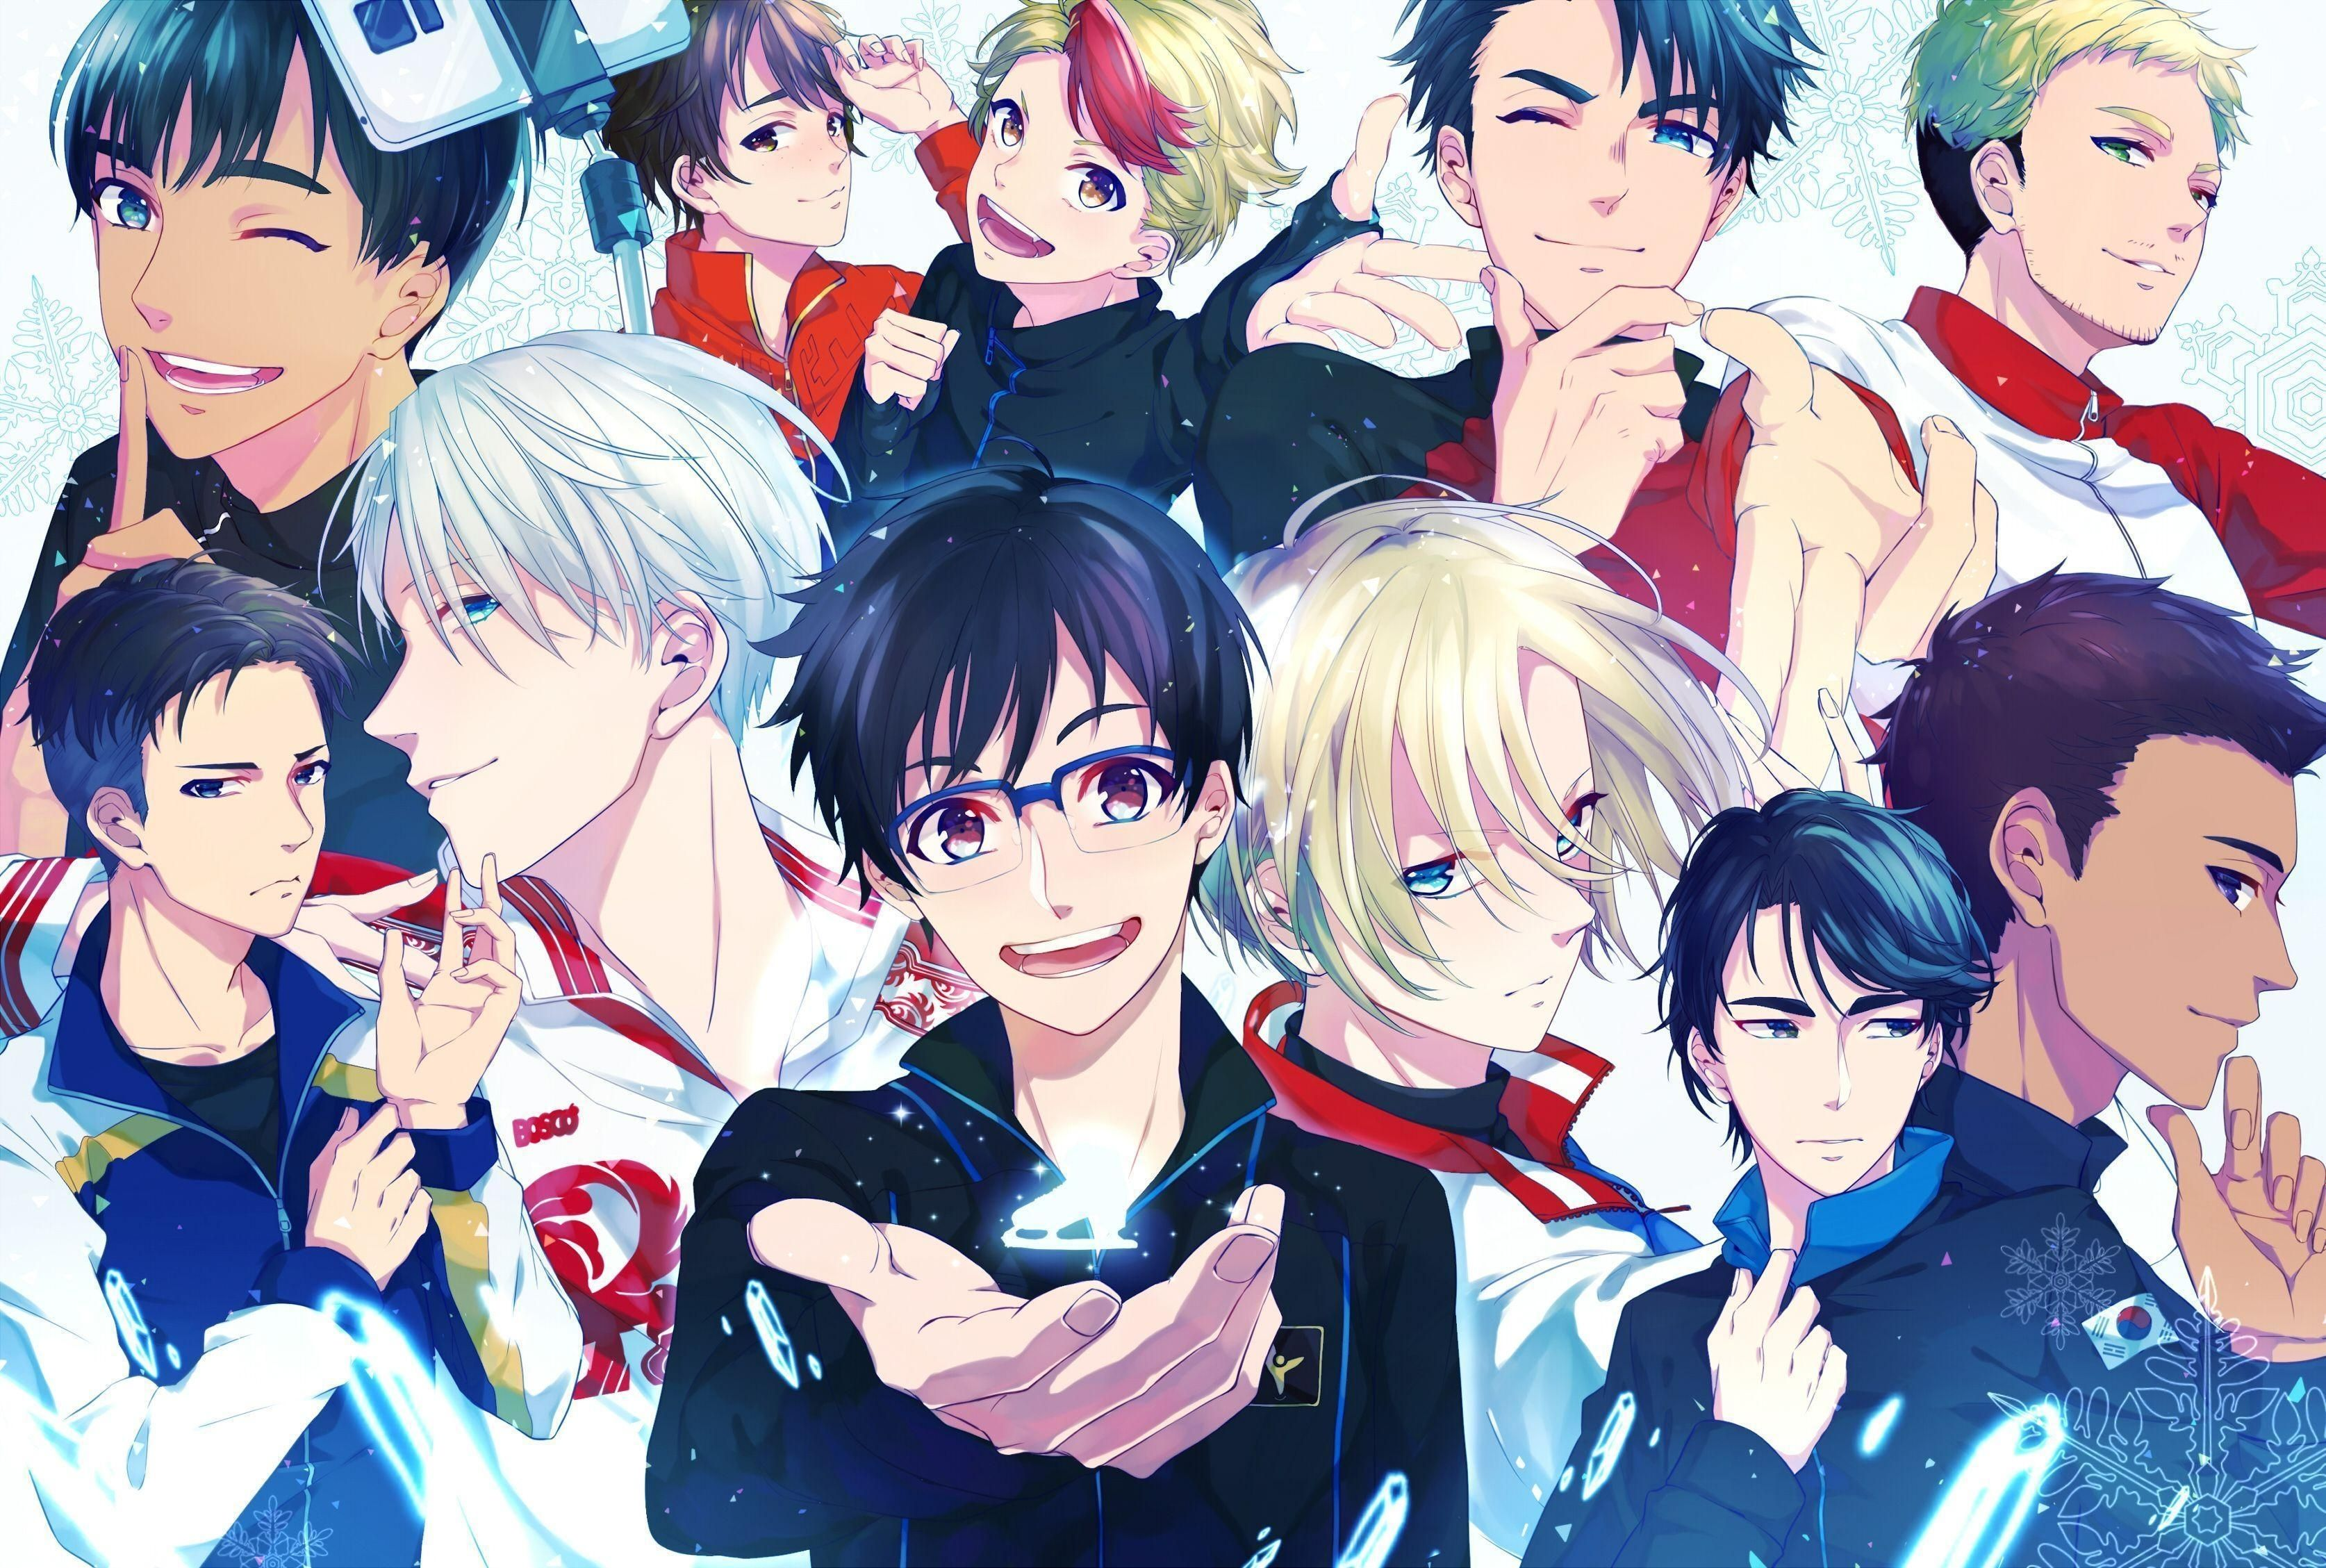 10 Most Popular Yuri On Ice Computer Wallpaper Full Hd 1920 1080 For Pc Background In 2020 Anime Computer Wallpaper Yuri On Ice Anime